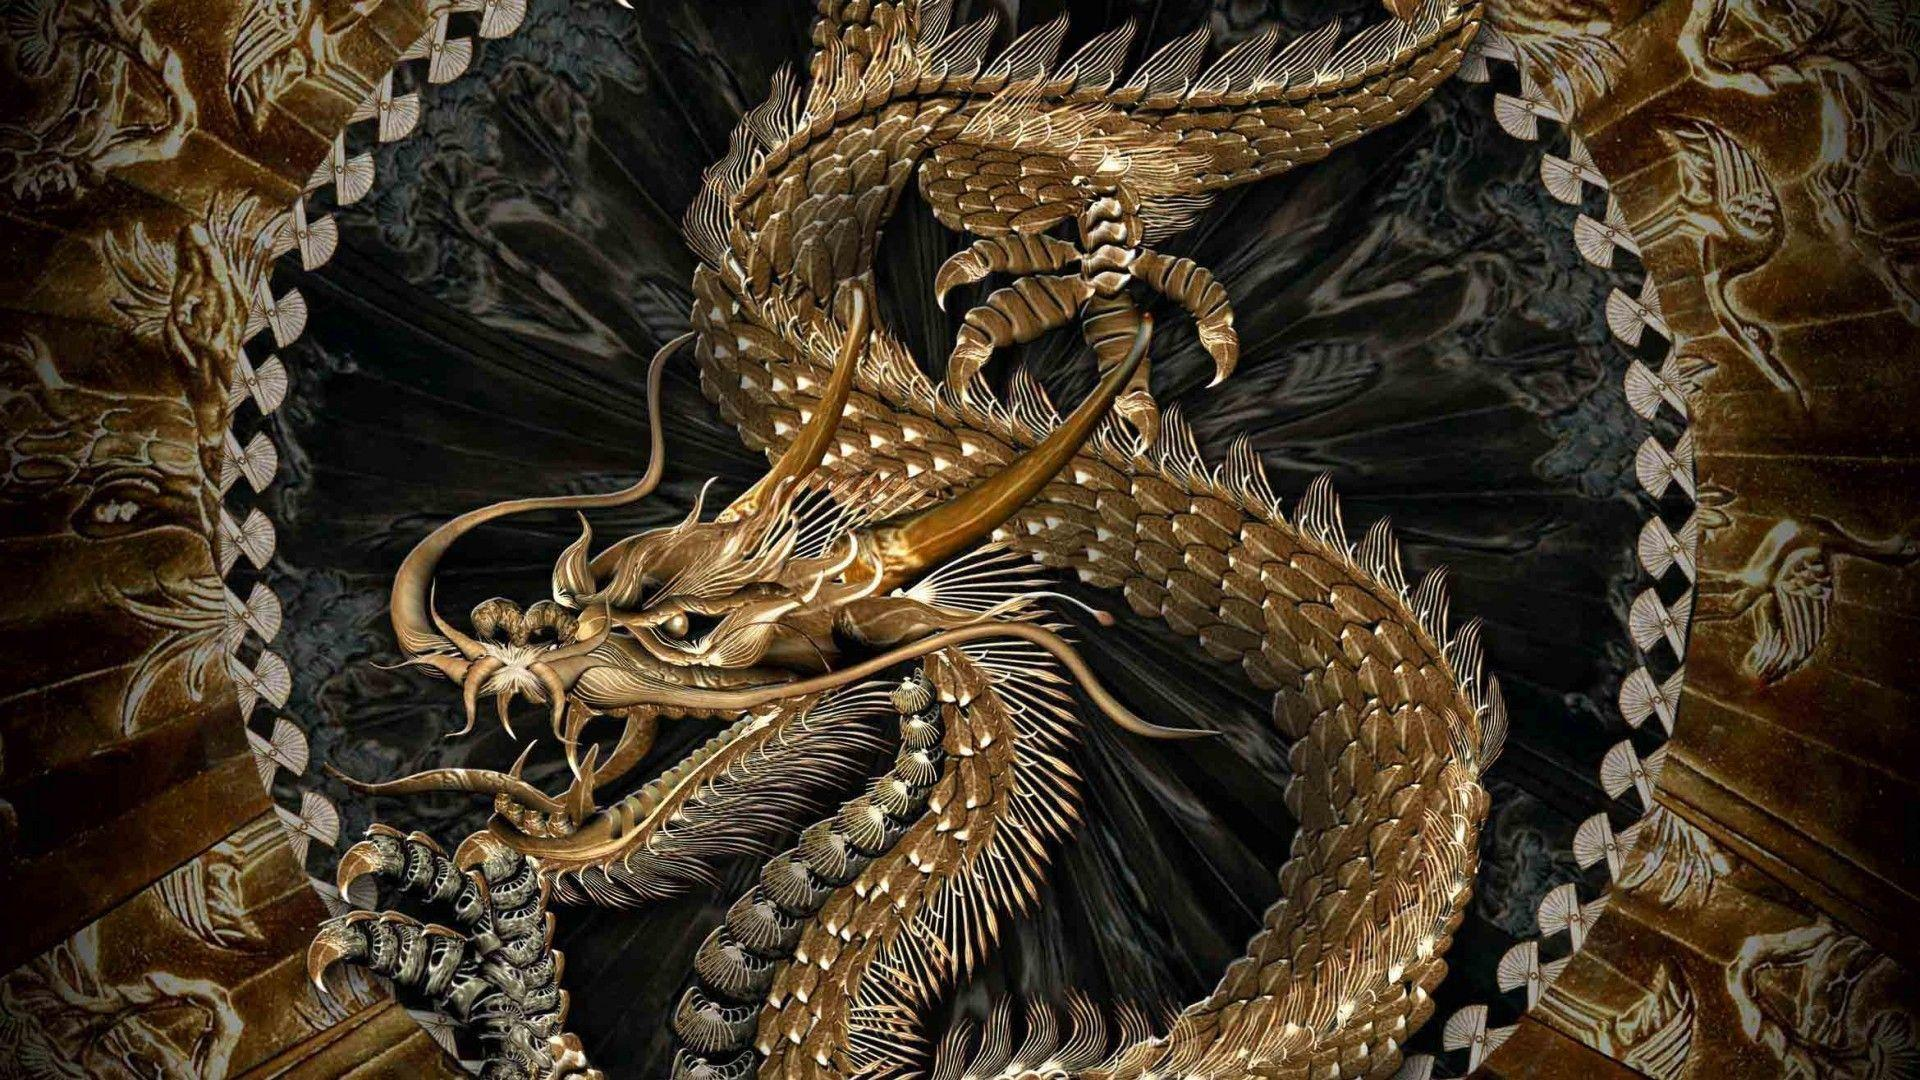 Oriental Dragon Full Hd 1080p 3d Wallpapers Wallpaper Cave